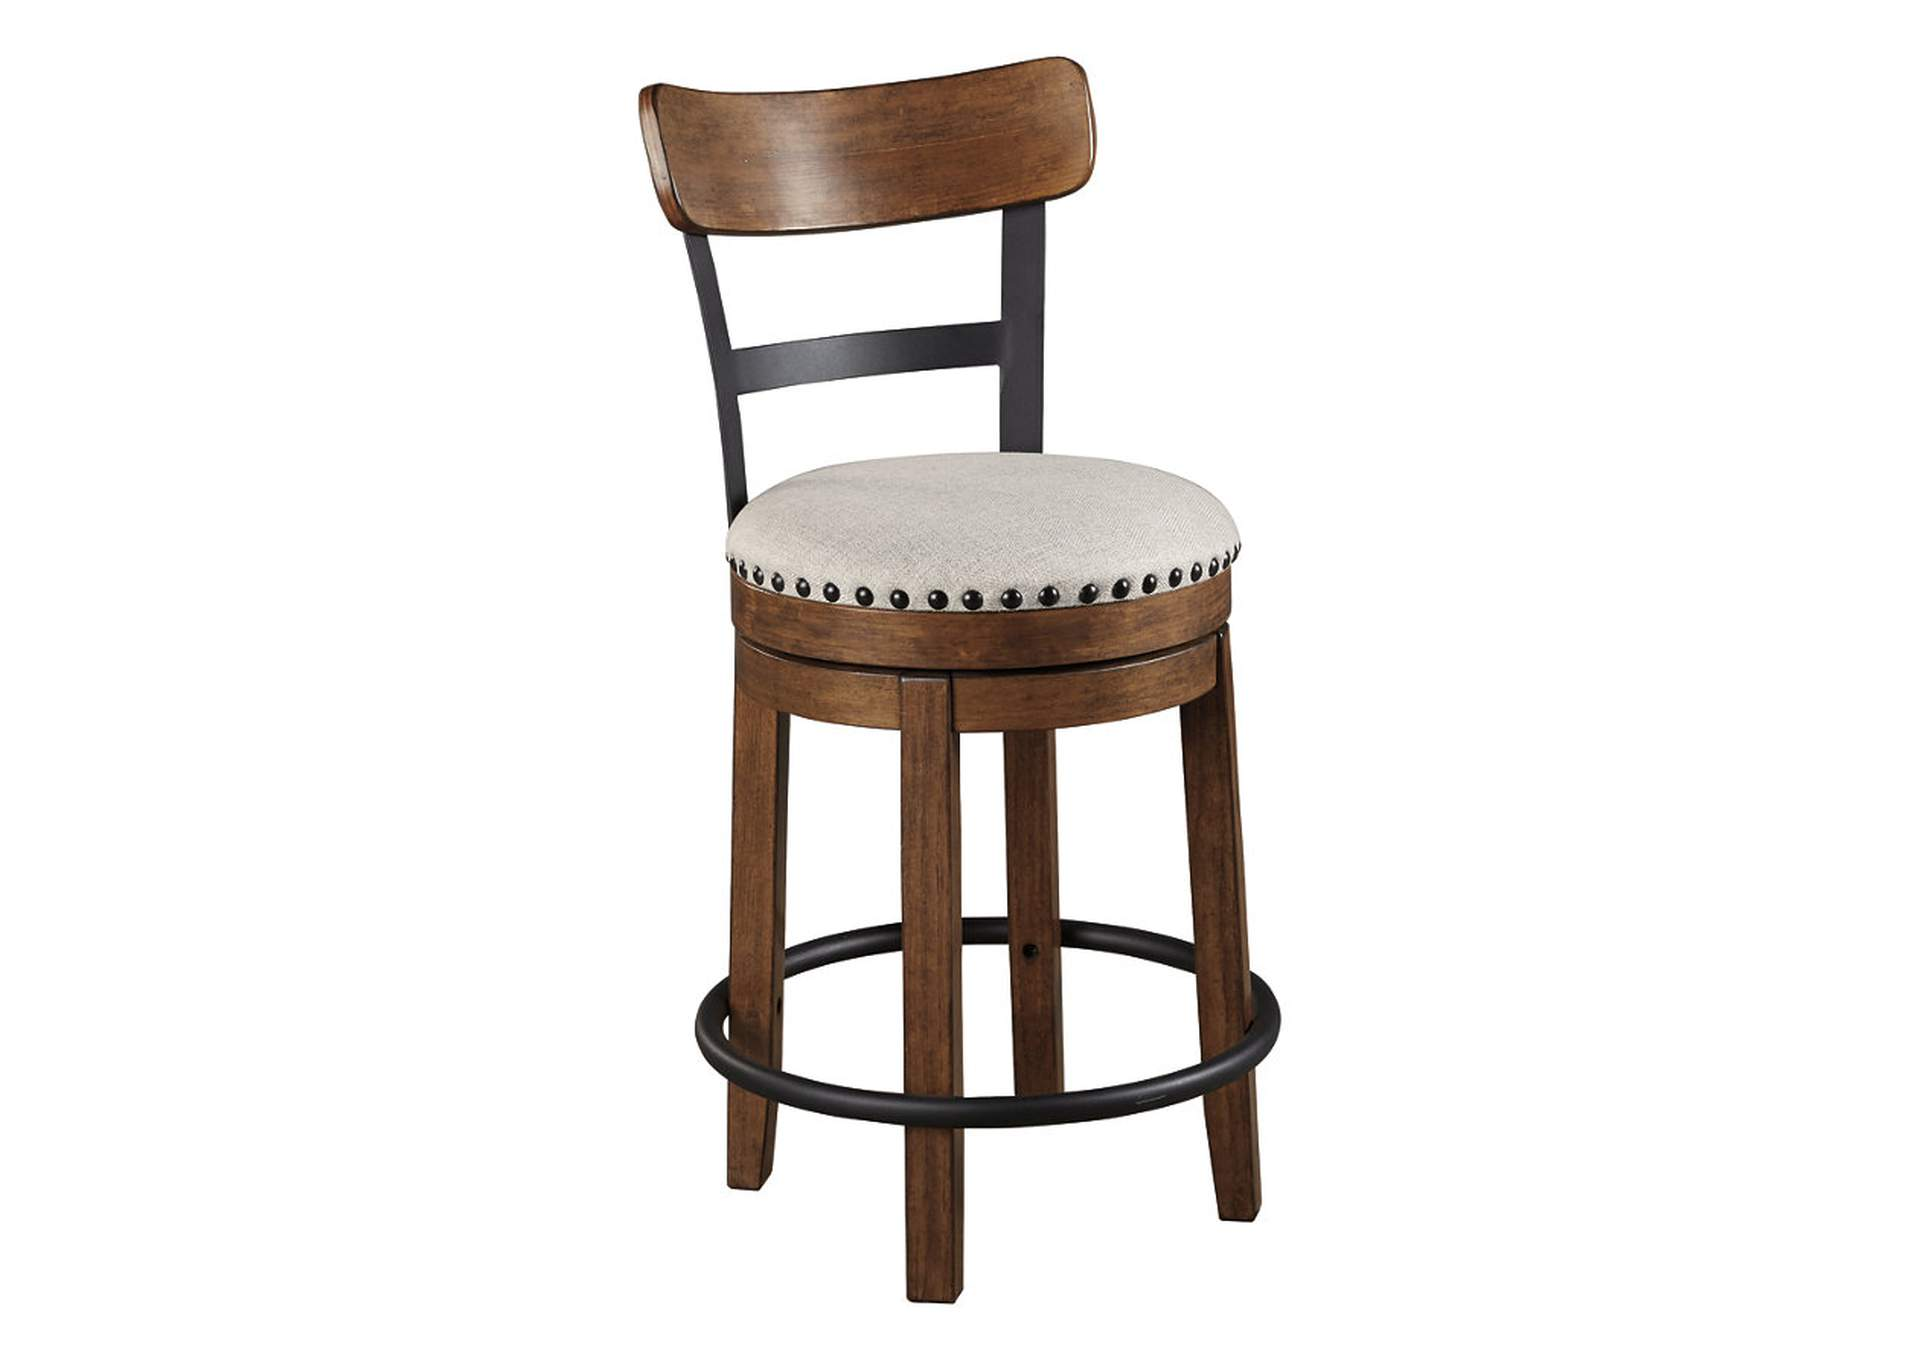 Valebeck Counter Height Bar Stool Ashley Furniture Homestore Independently Owned And Operated By Best Furn Appliances I